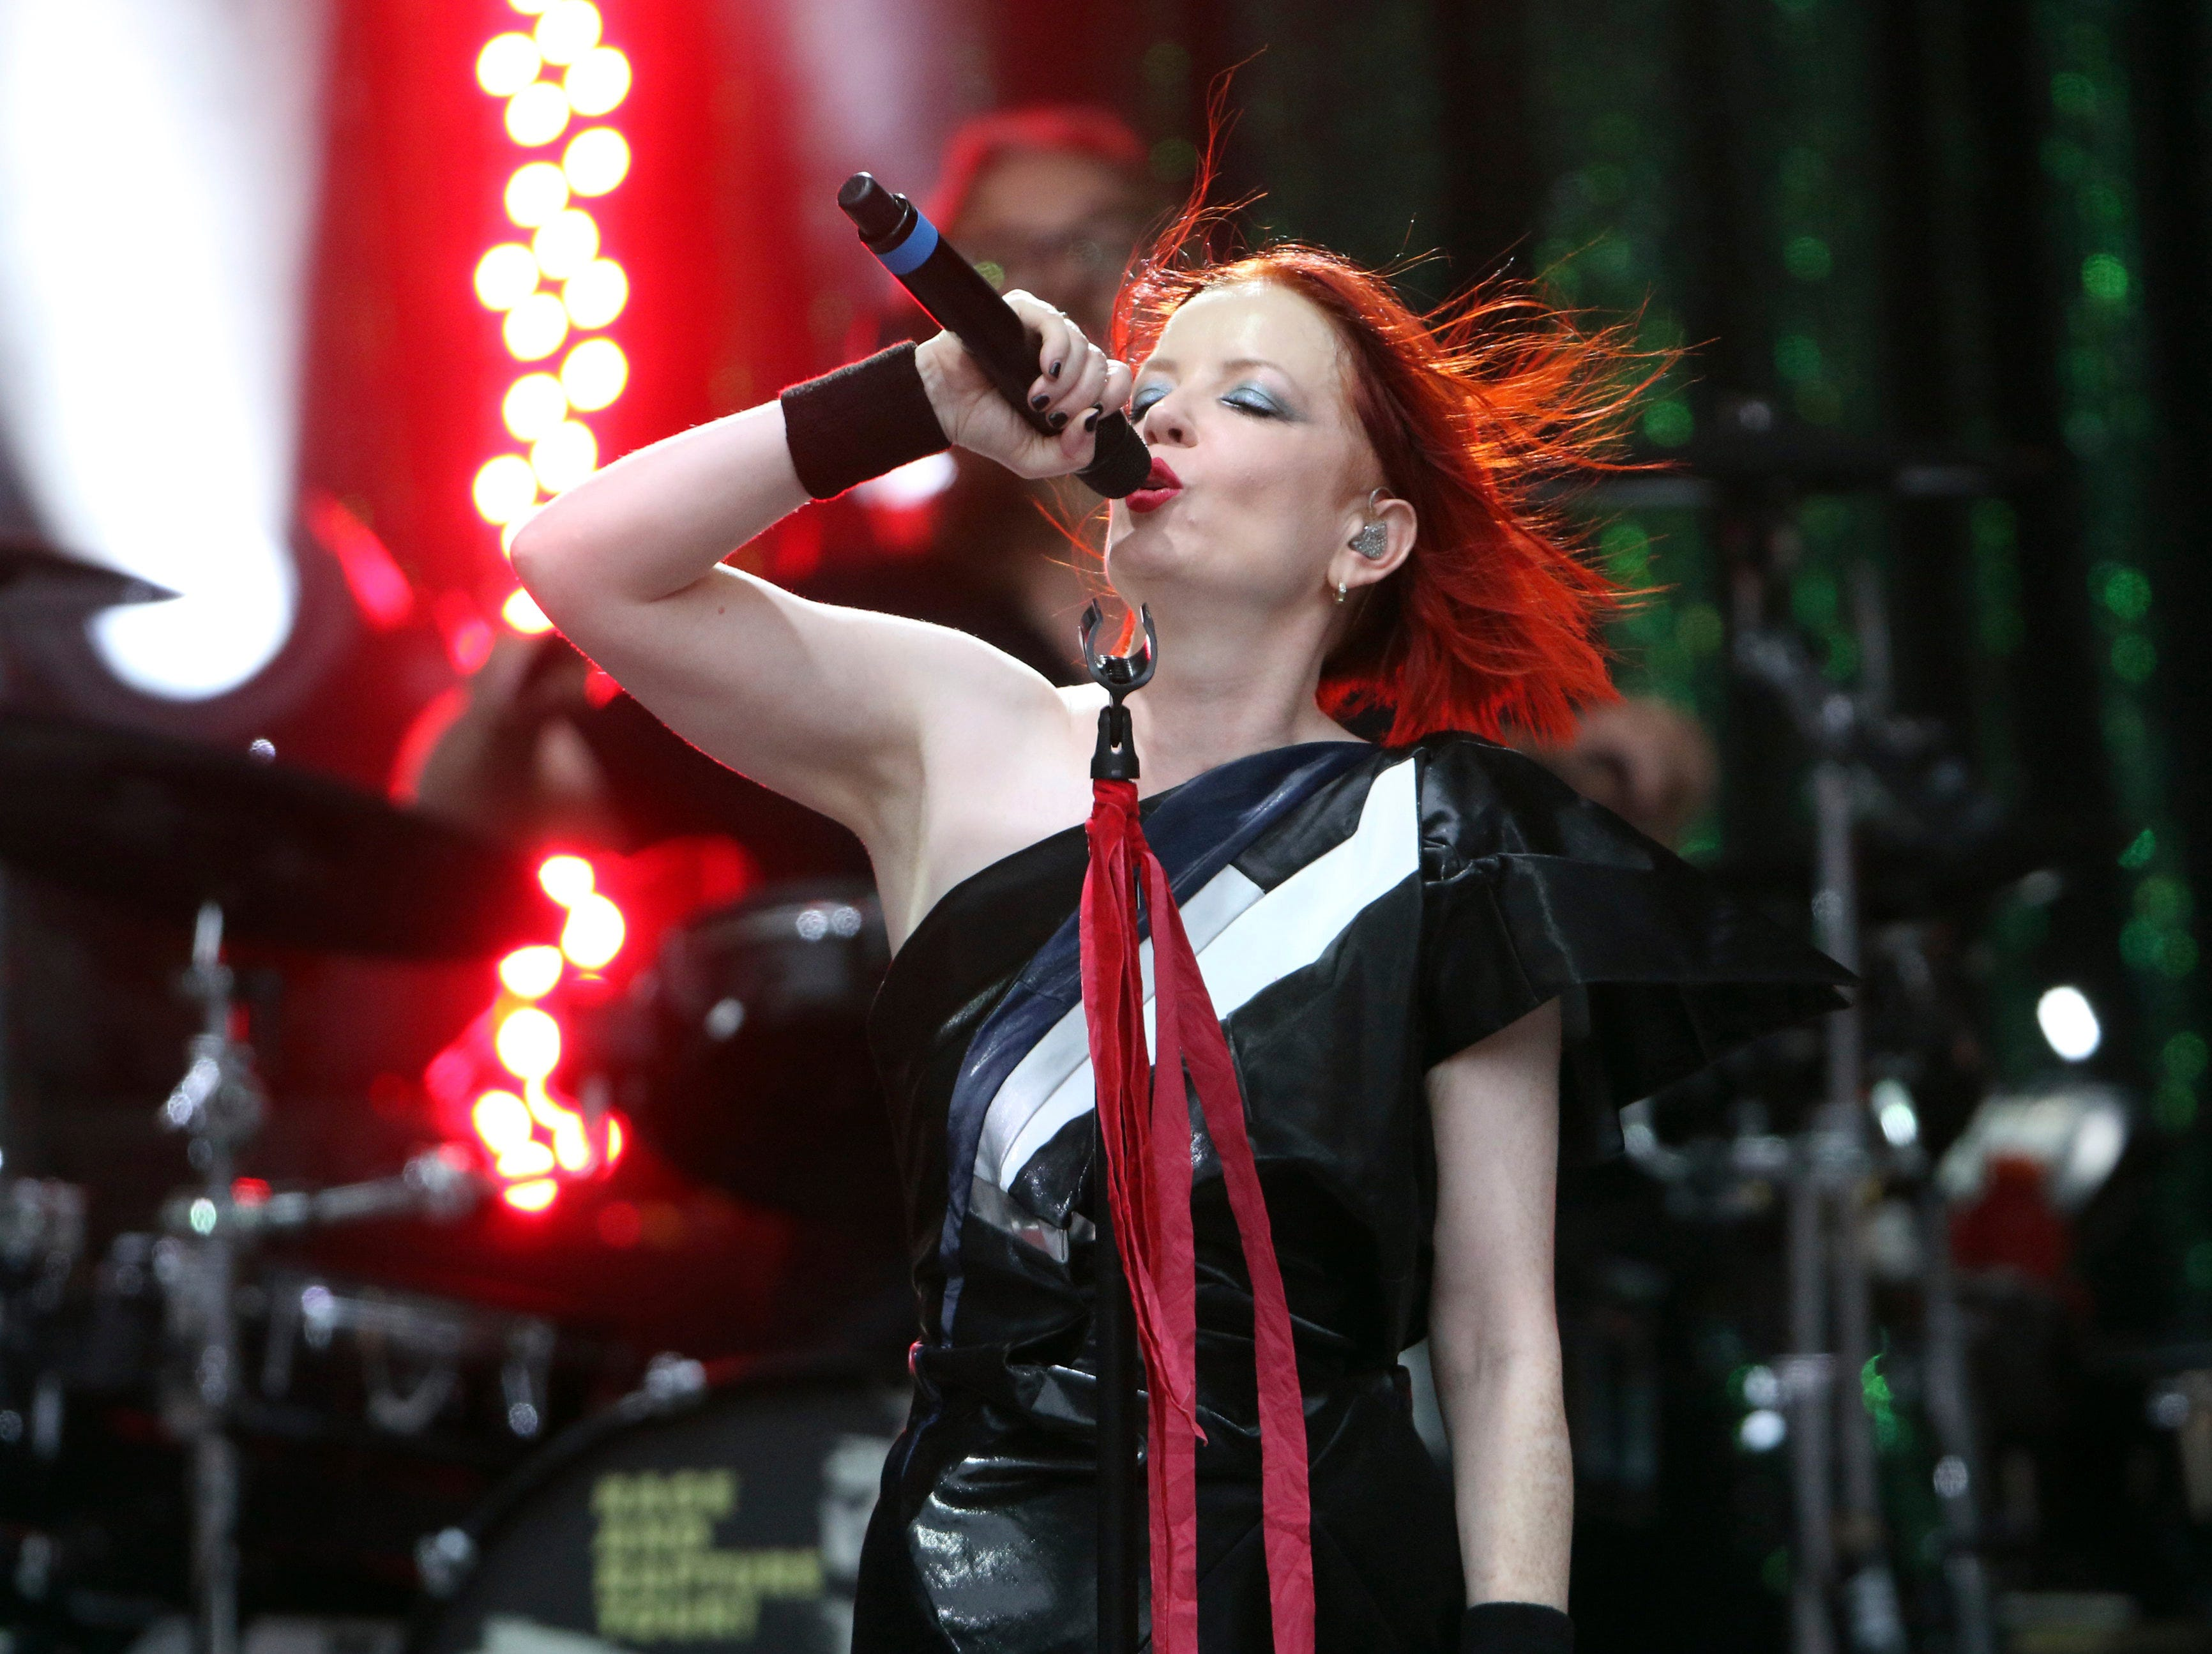 Shirley Manson of Garbage performs Aug. 6, 2017, during Blondie & Garbage: The Rage and Rapture Tour at Chastain Park Amphitheatre in Atlanta. Garbage will perform at SunFest in West Palm Beach.